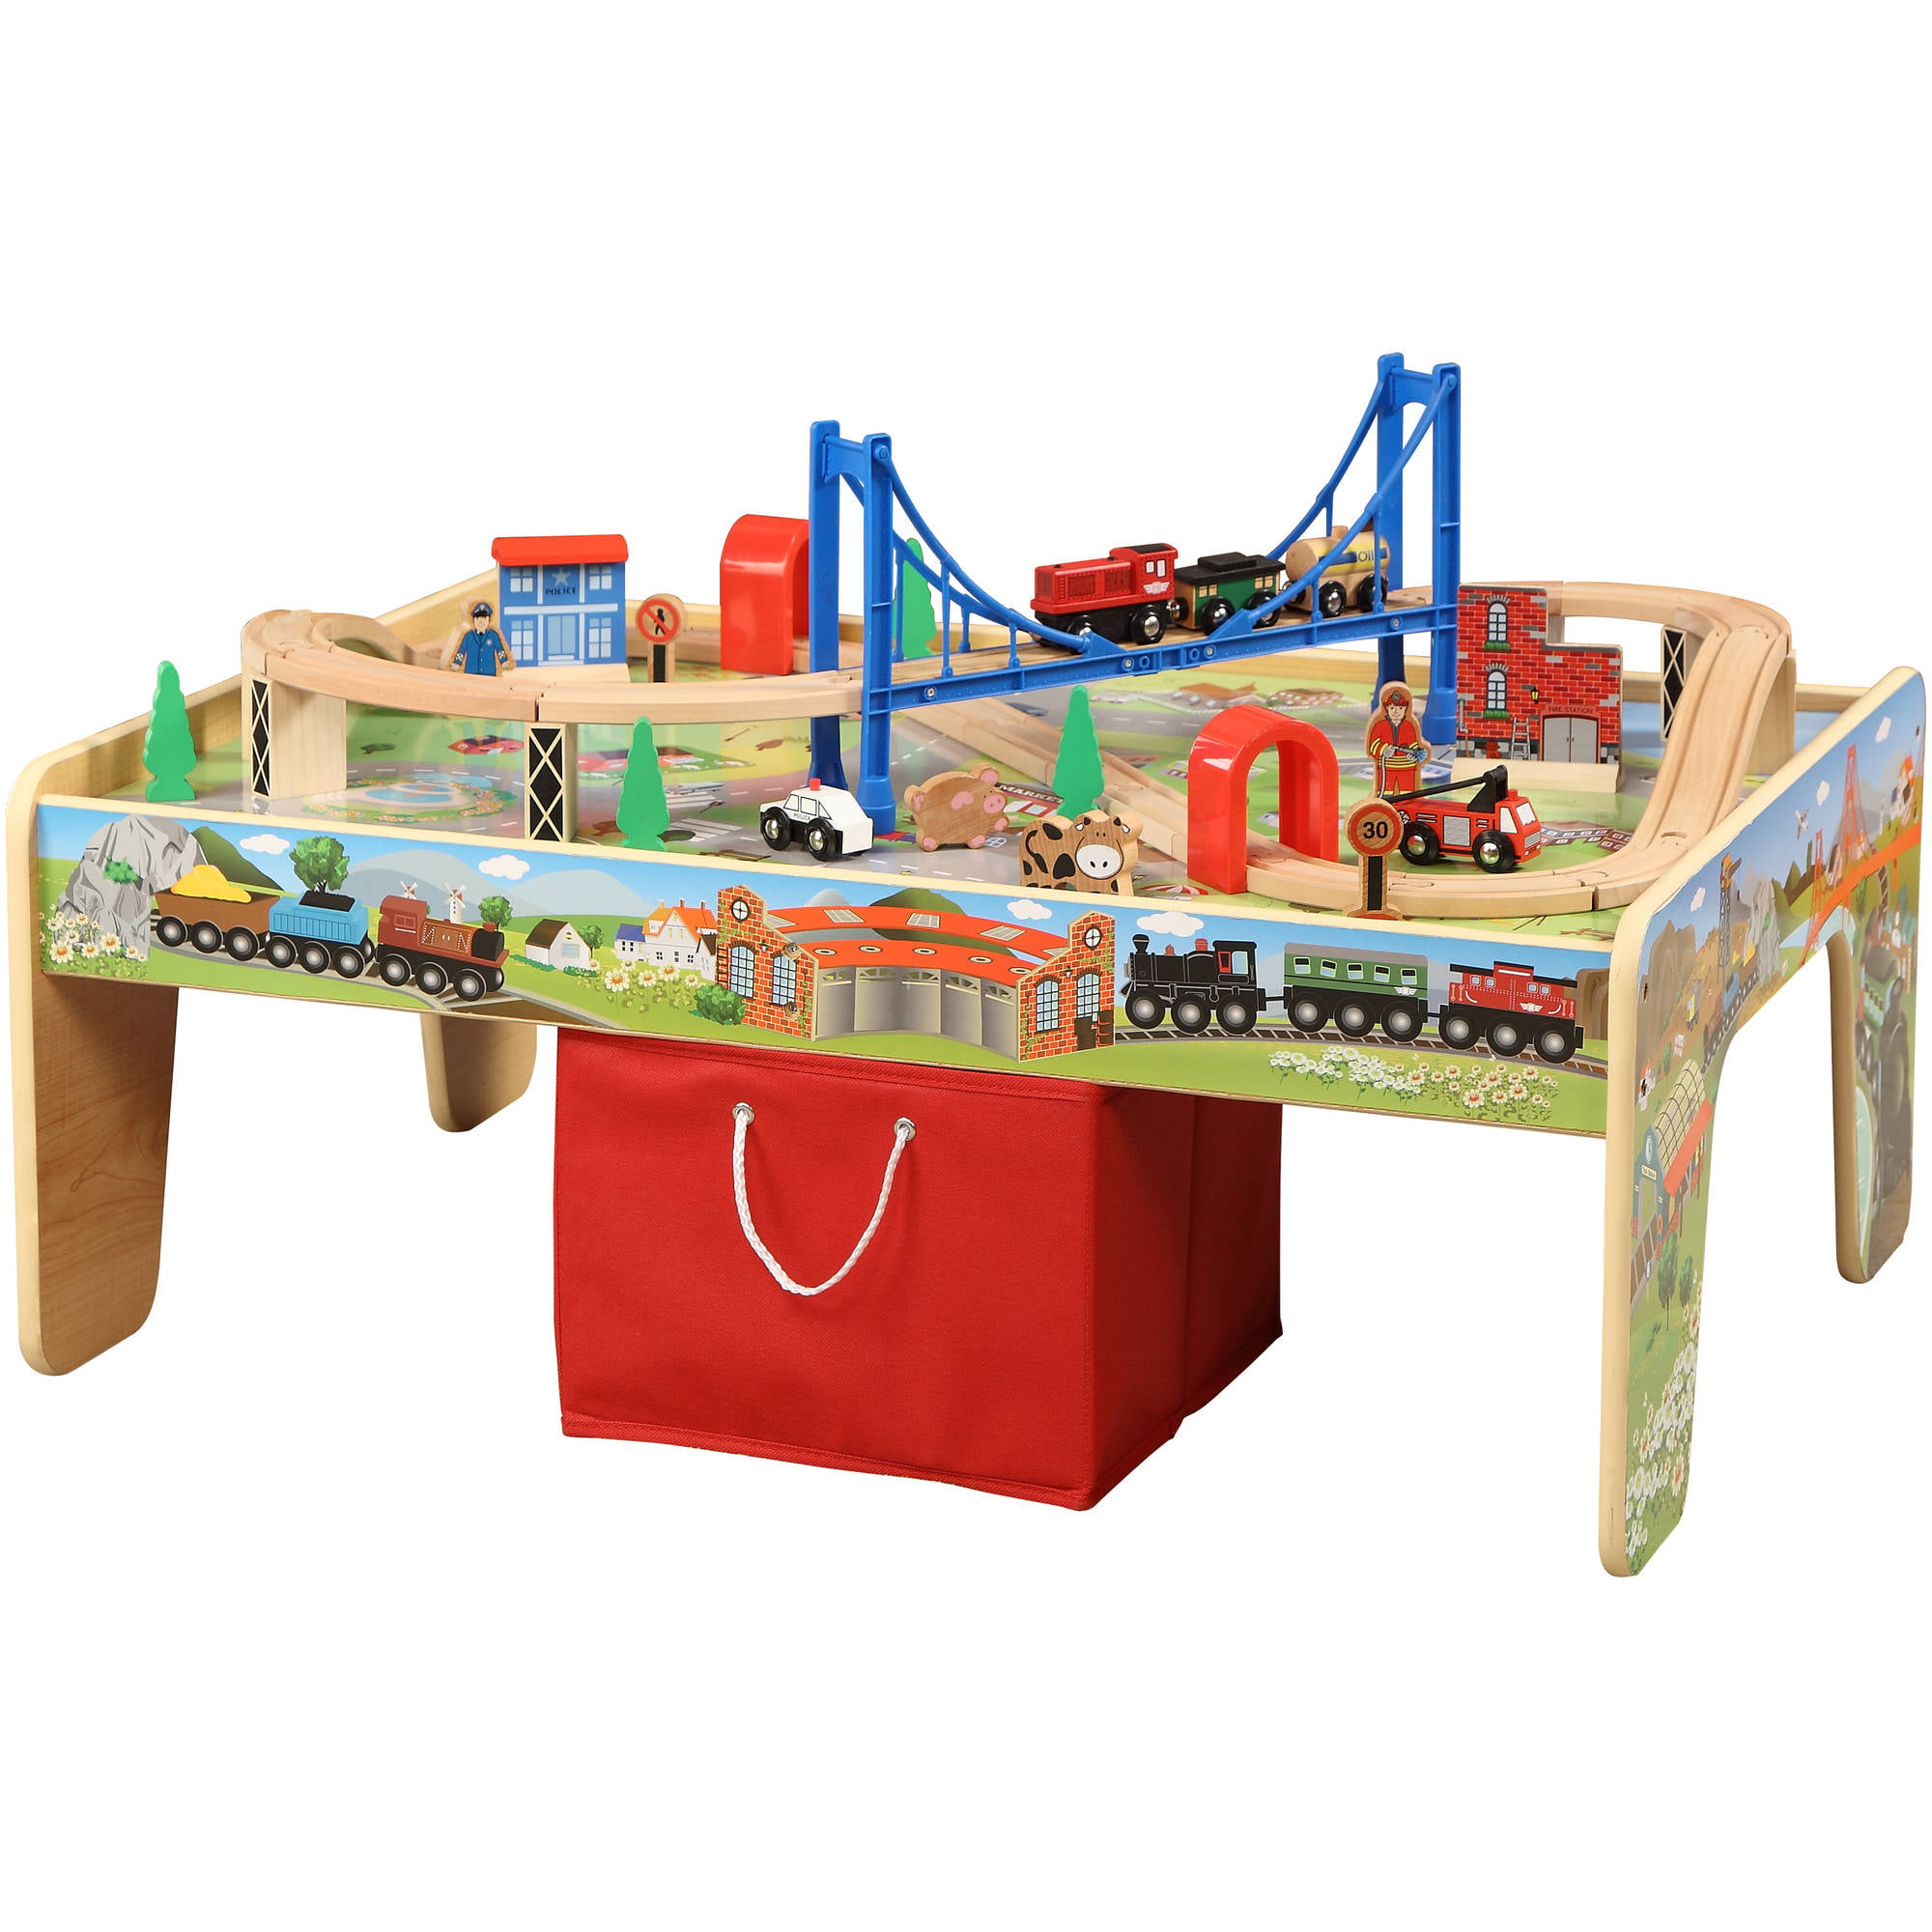 50 Piece Train Set with 2 in 1 Activity Table Walmart